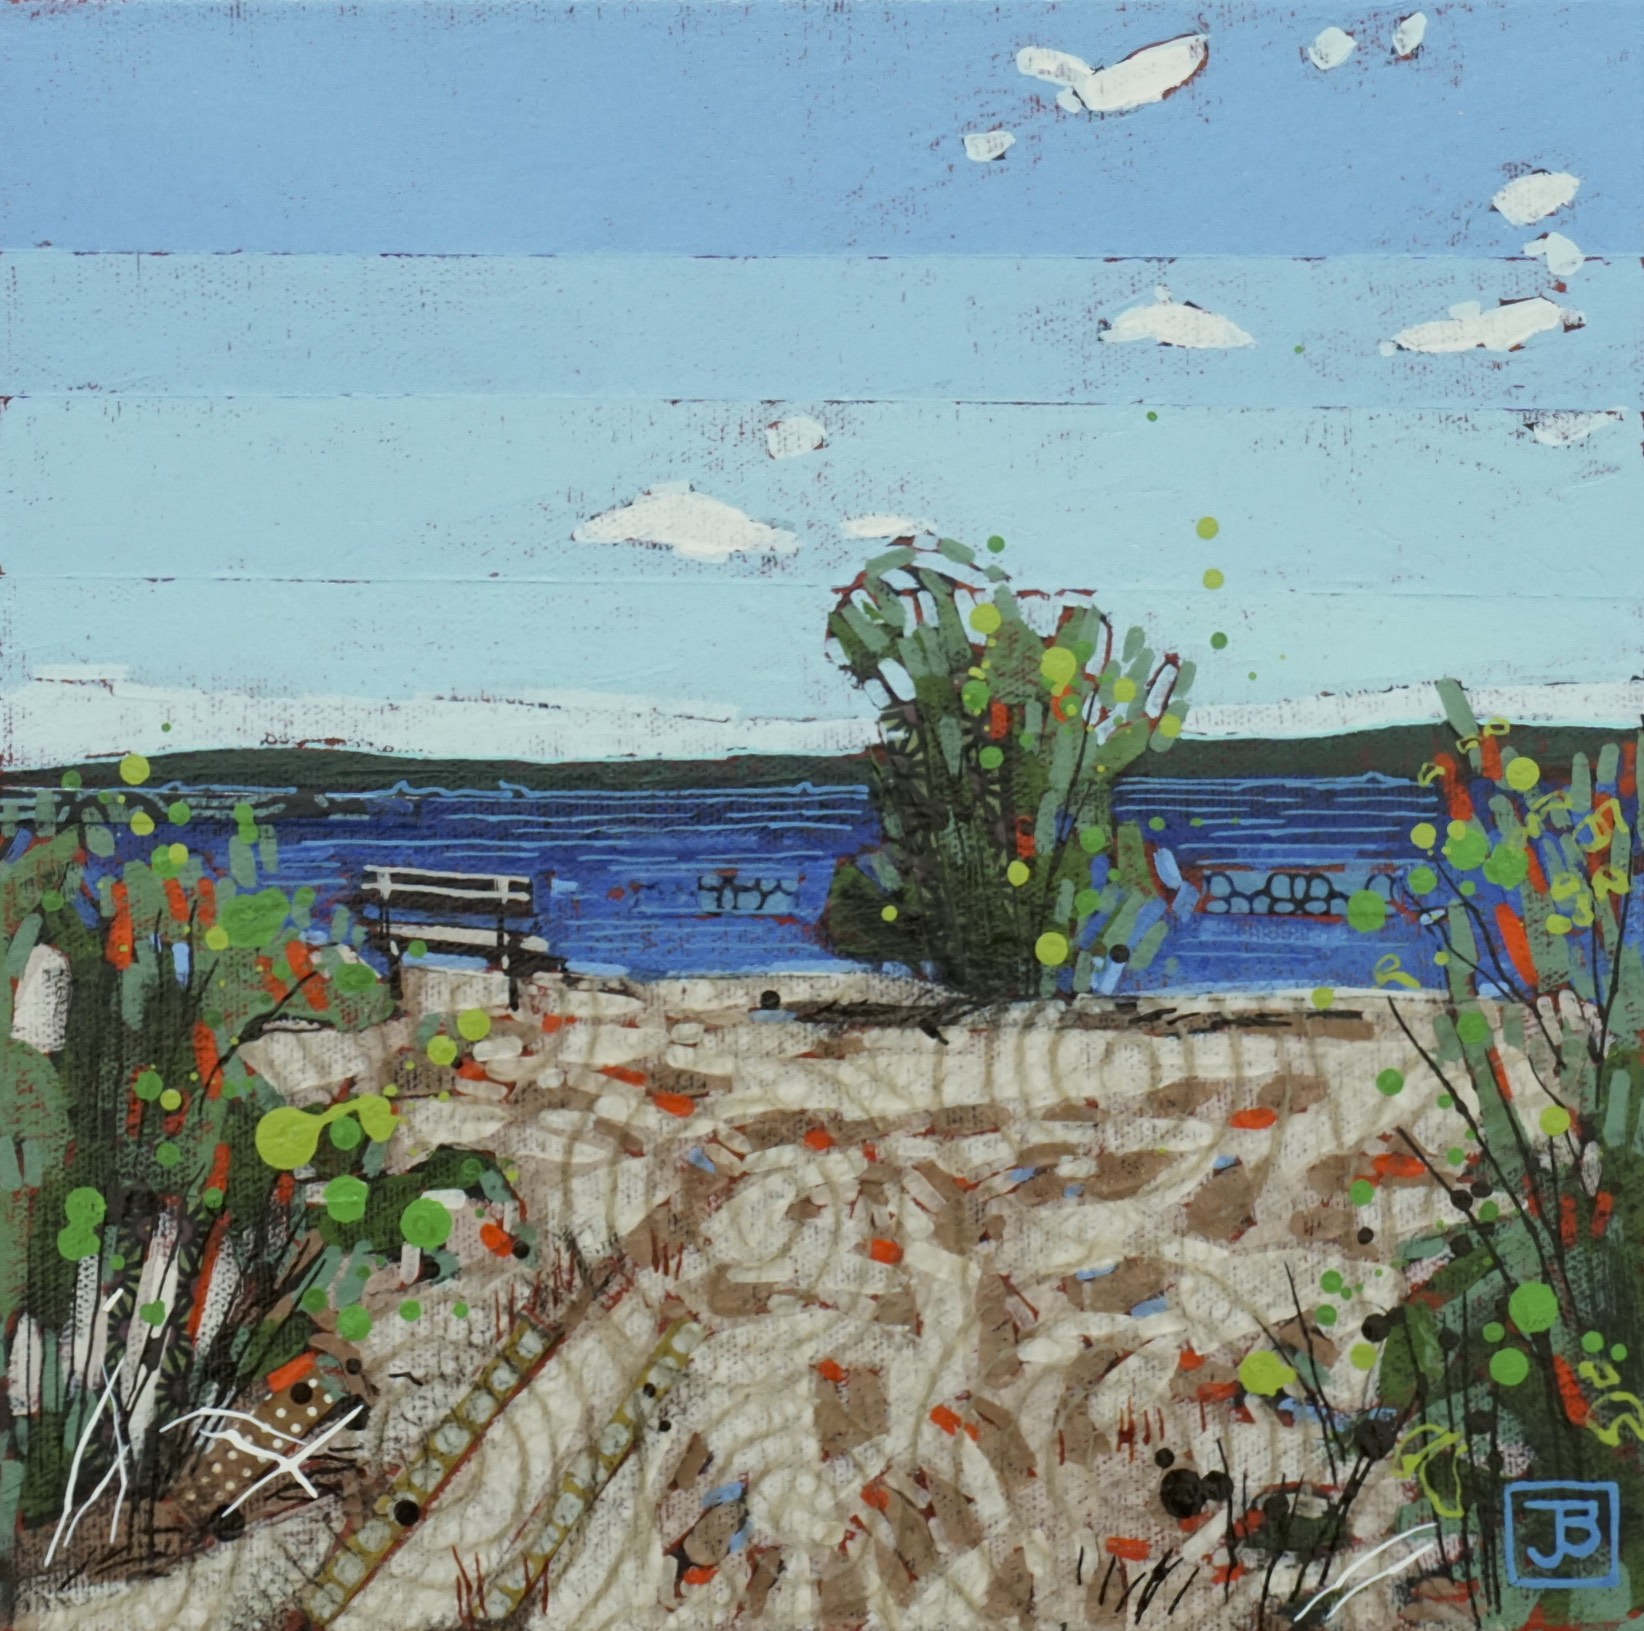 a clear july day, lac la biche, AB,  mixed media on canvas, 10x10(in), $175 + GST,  2018